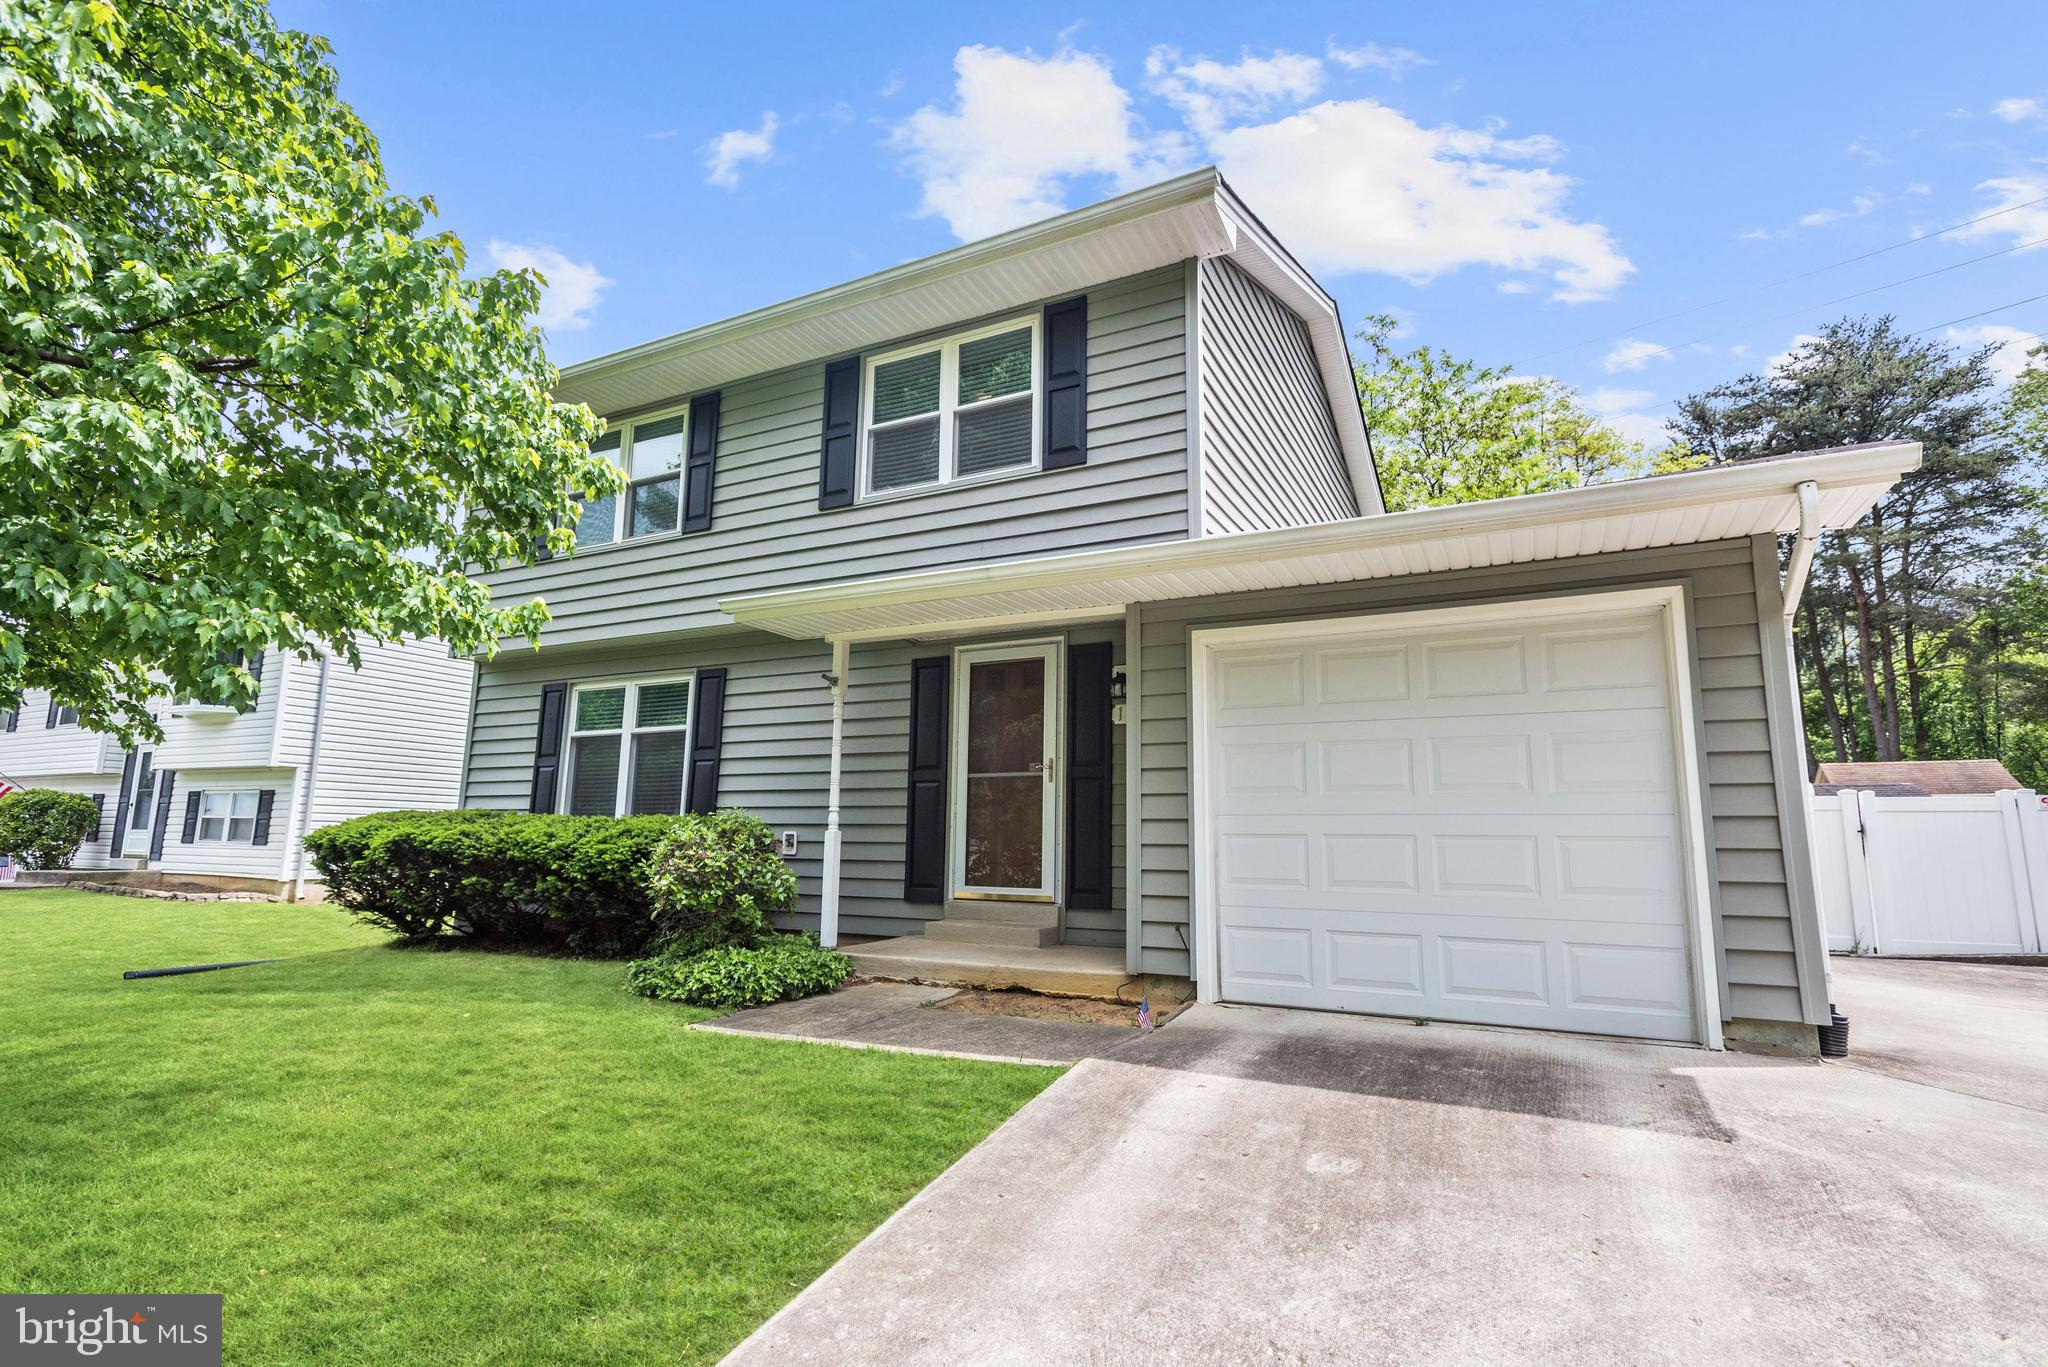 Beautifully maintained colonial style home completely move in ready and awaiting new owners! Gleamin